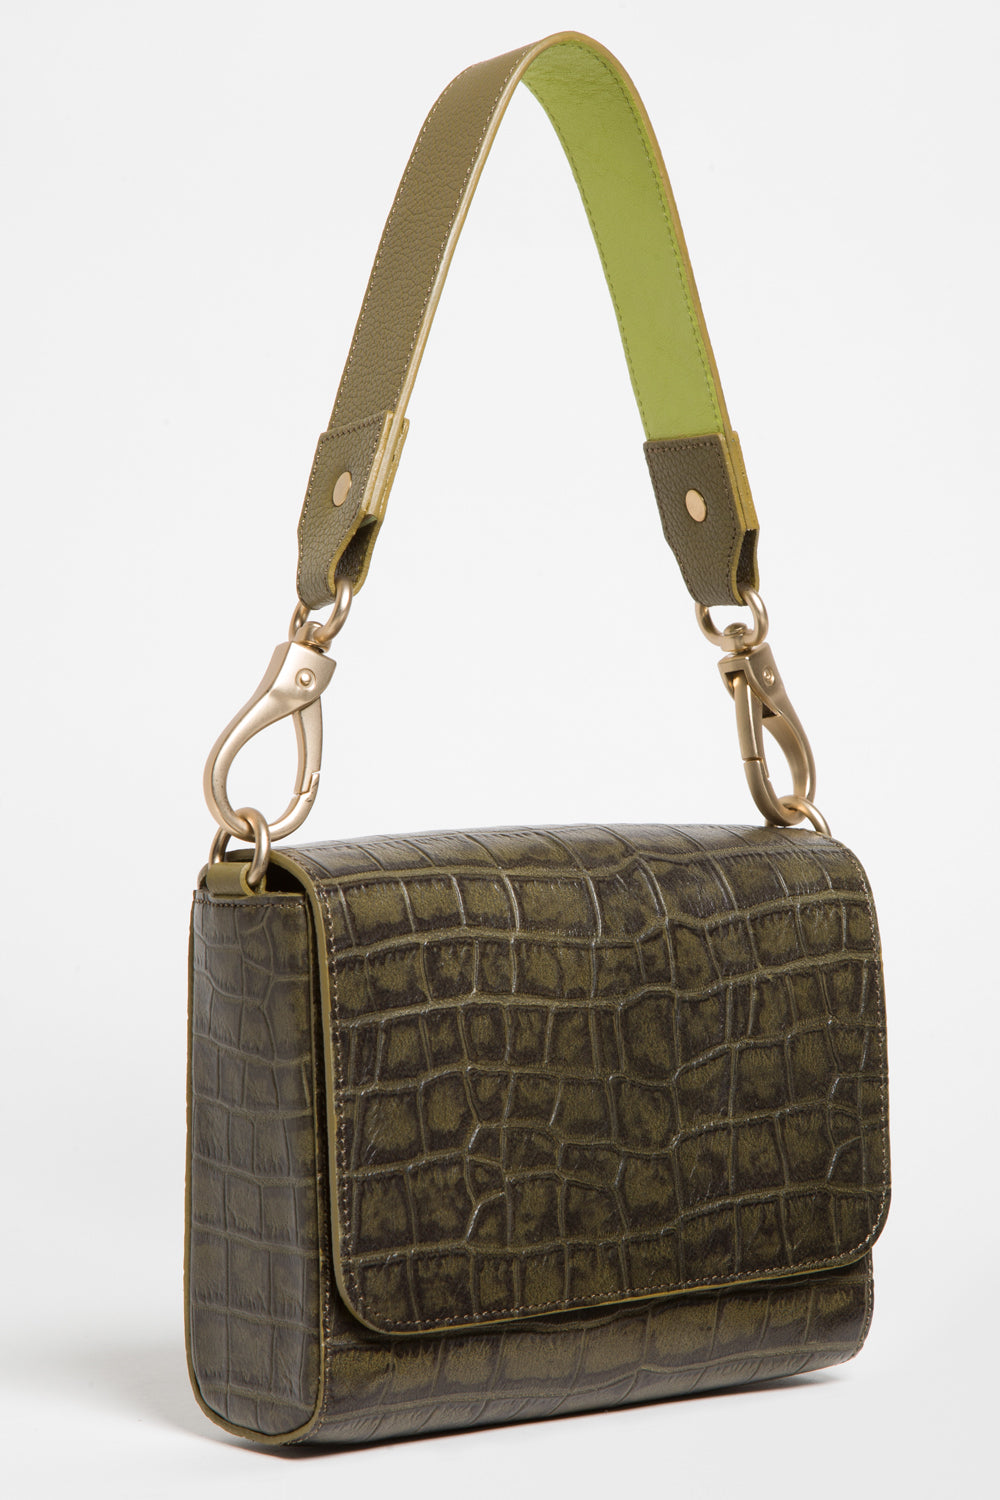 'Gema' Small Shoulder Bag in Green Moss, Croc-Emboss Leather | Mel Boteri | Short Strap View